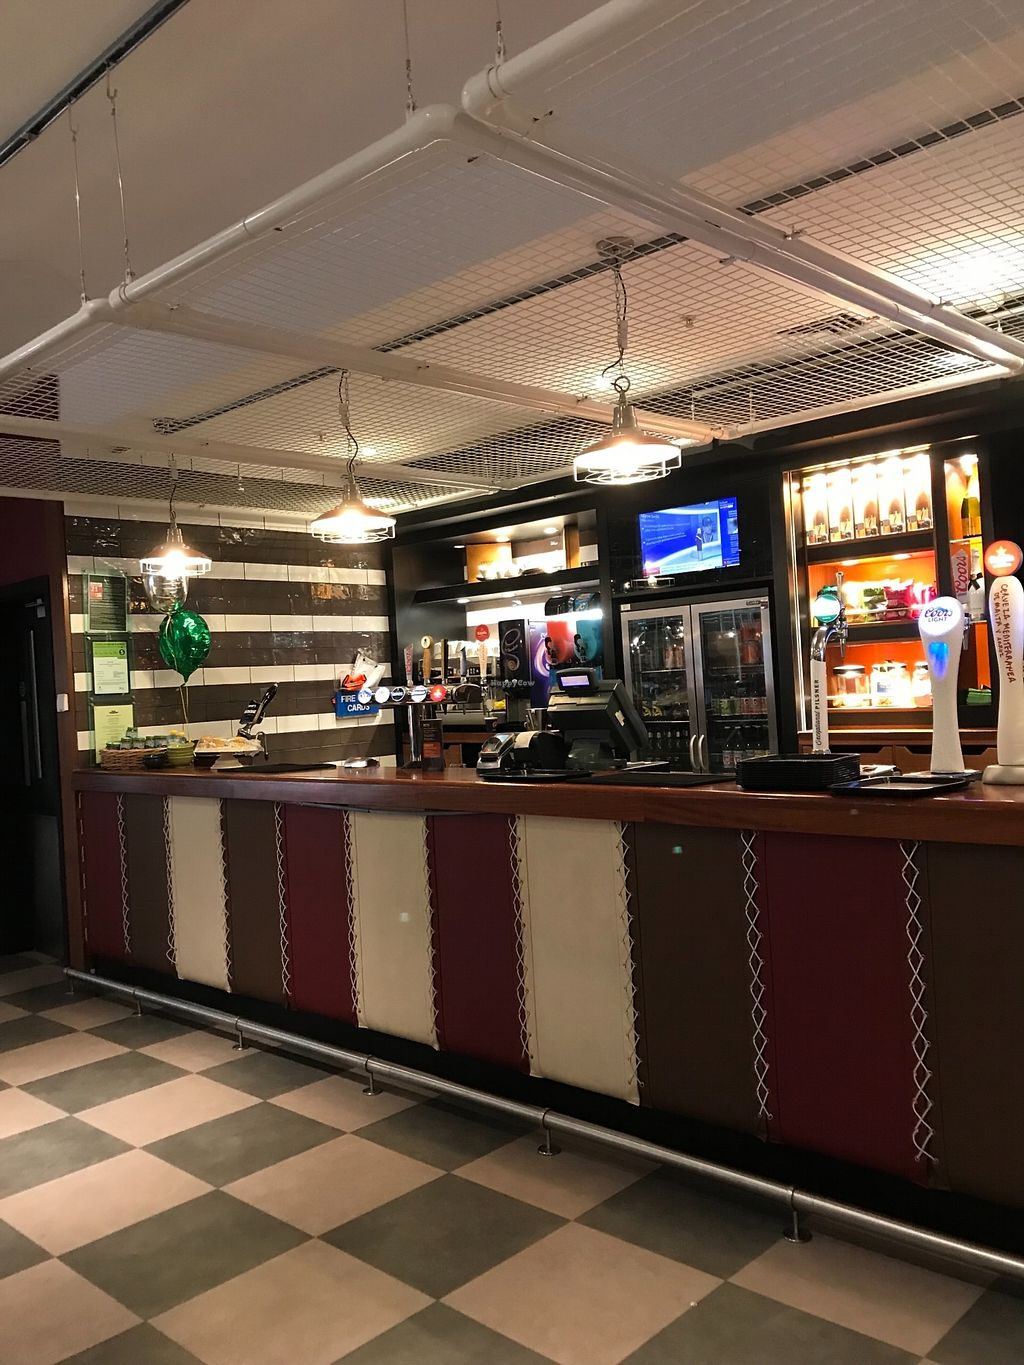 """Photo of Sports Cafe - Center Parcs  by <a href=""""/members/profile/20daisy00"""">20daisy00</a> <br/>Bar <br/> March 29, 2018  - <a href='/contact/abuse/image/115999/377686'>Report</a>"""